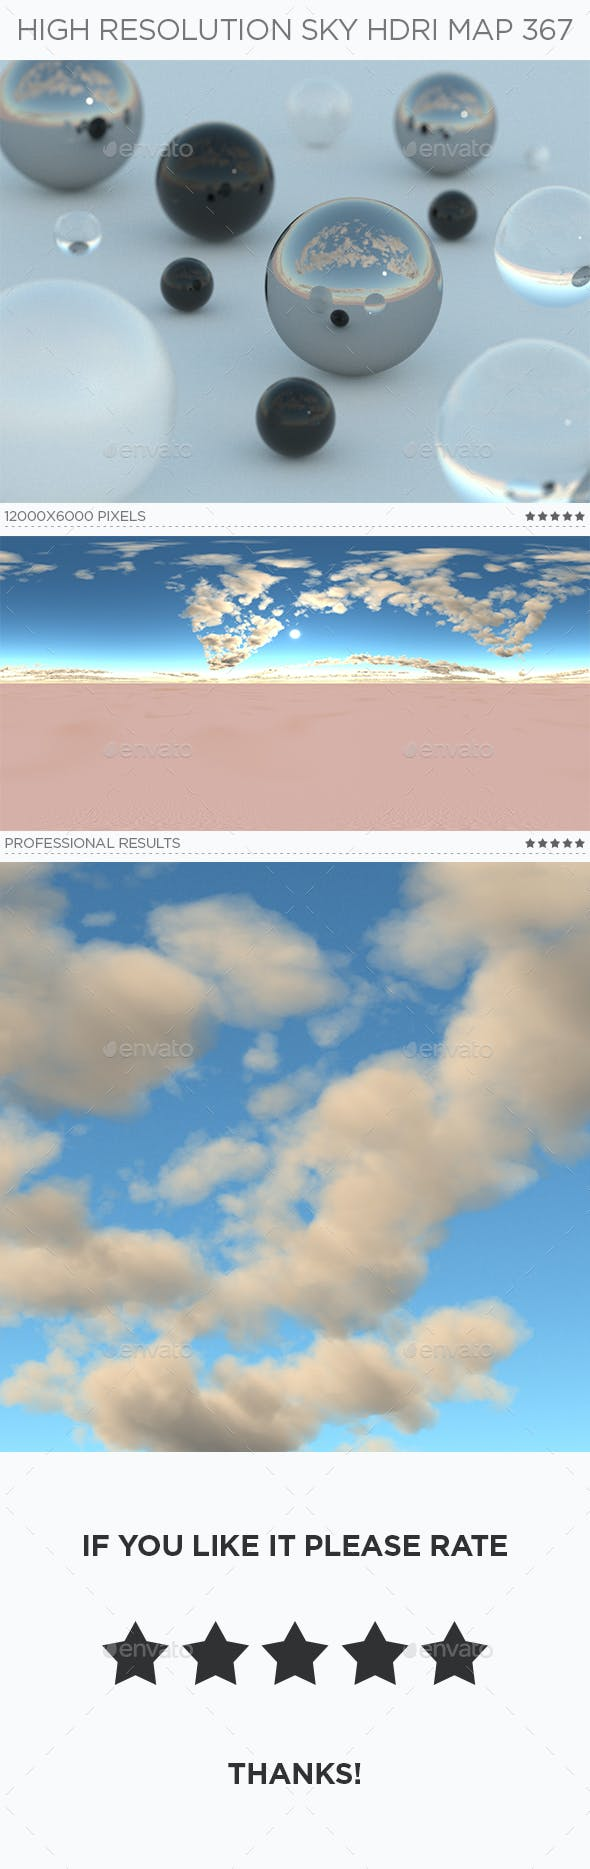 High Resolution Sky HDRi Map 367 - 3DOcean Item for Sale